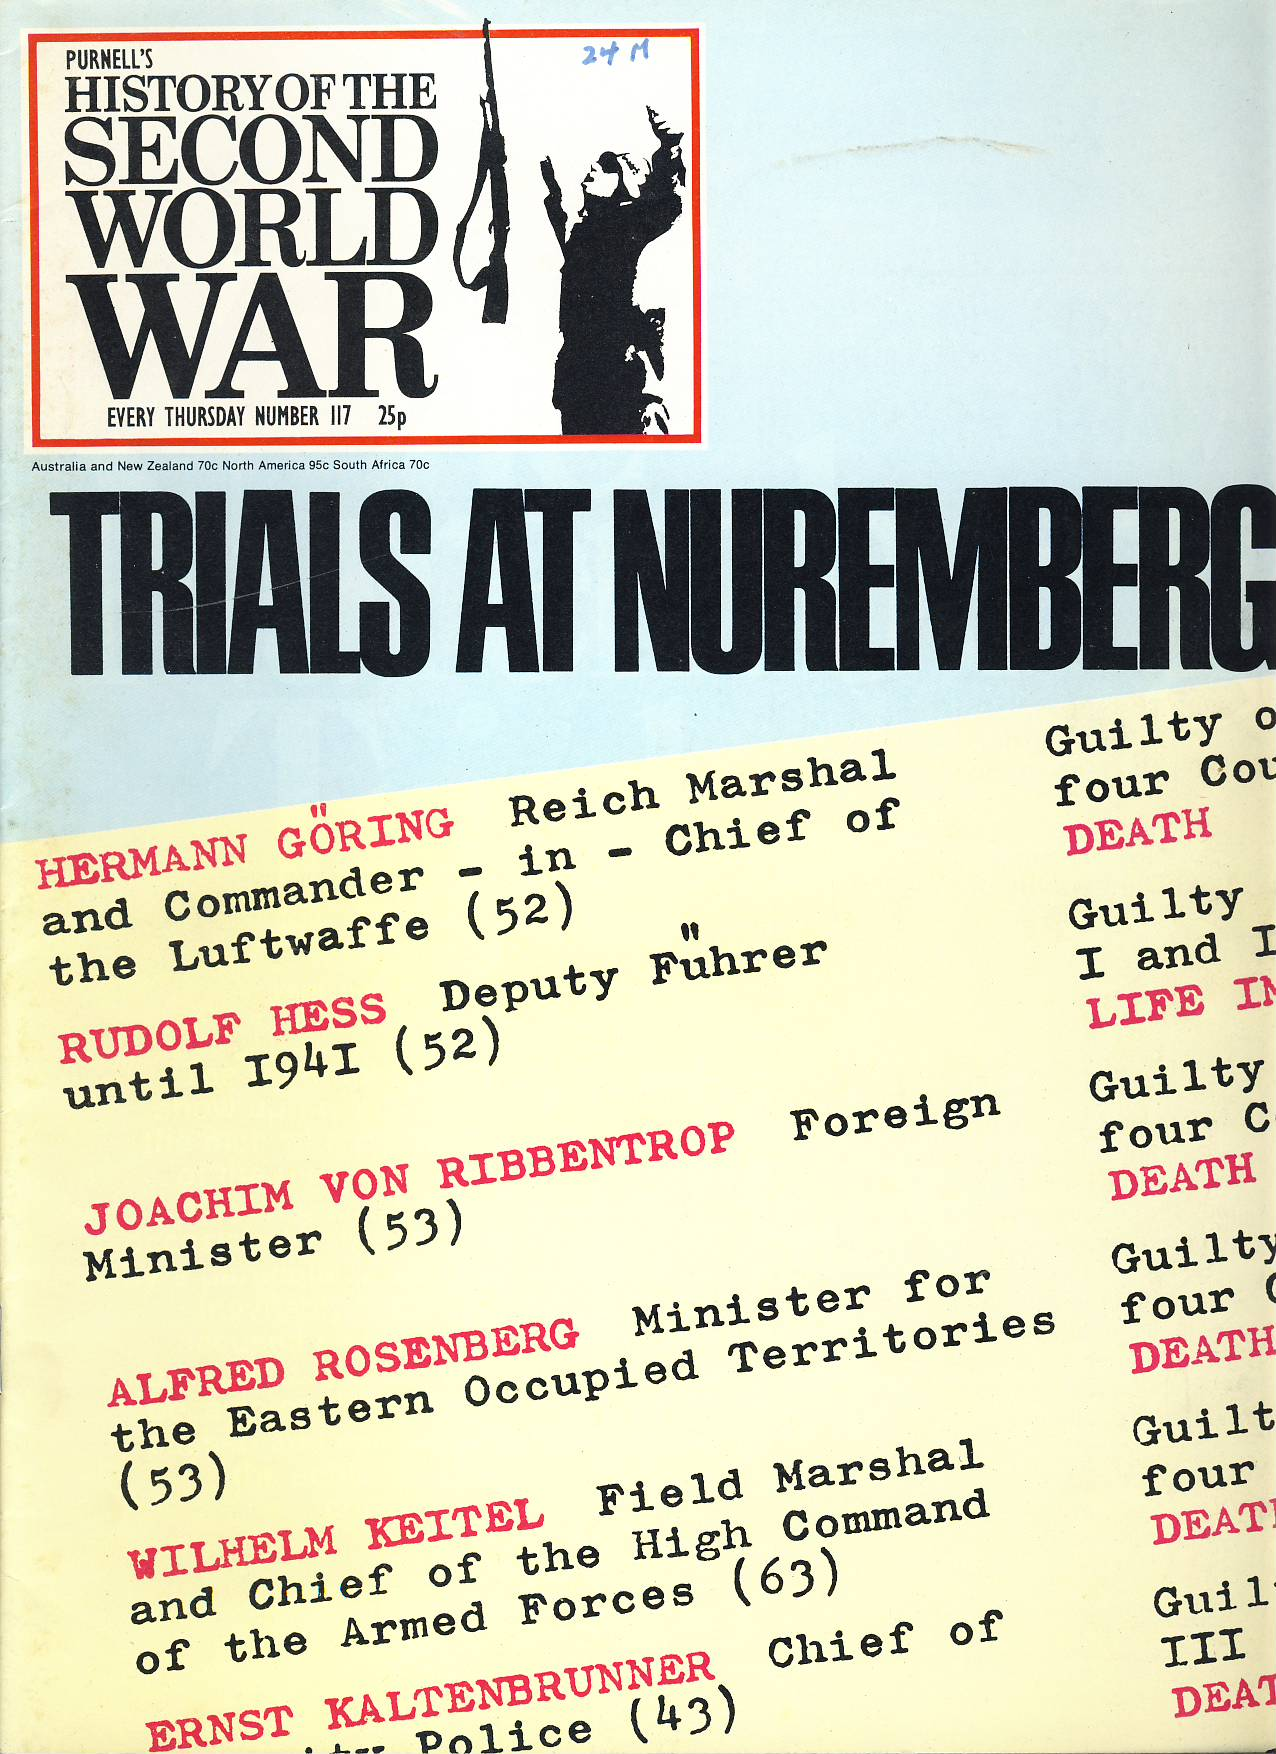 History of the Second World War Magazine #117 Trails at Nuremberg A vintage Purnell's weekly magazine in good read condition. Please see larger photo and full description for details.